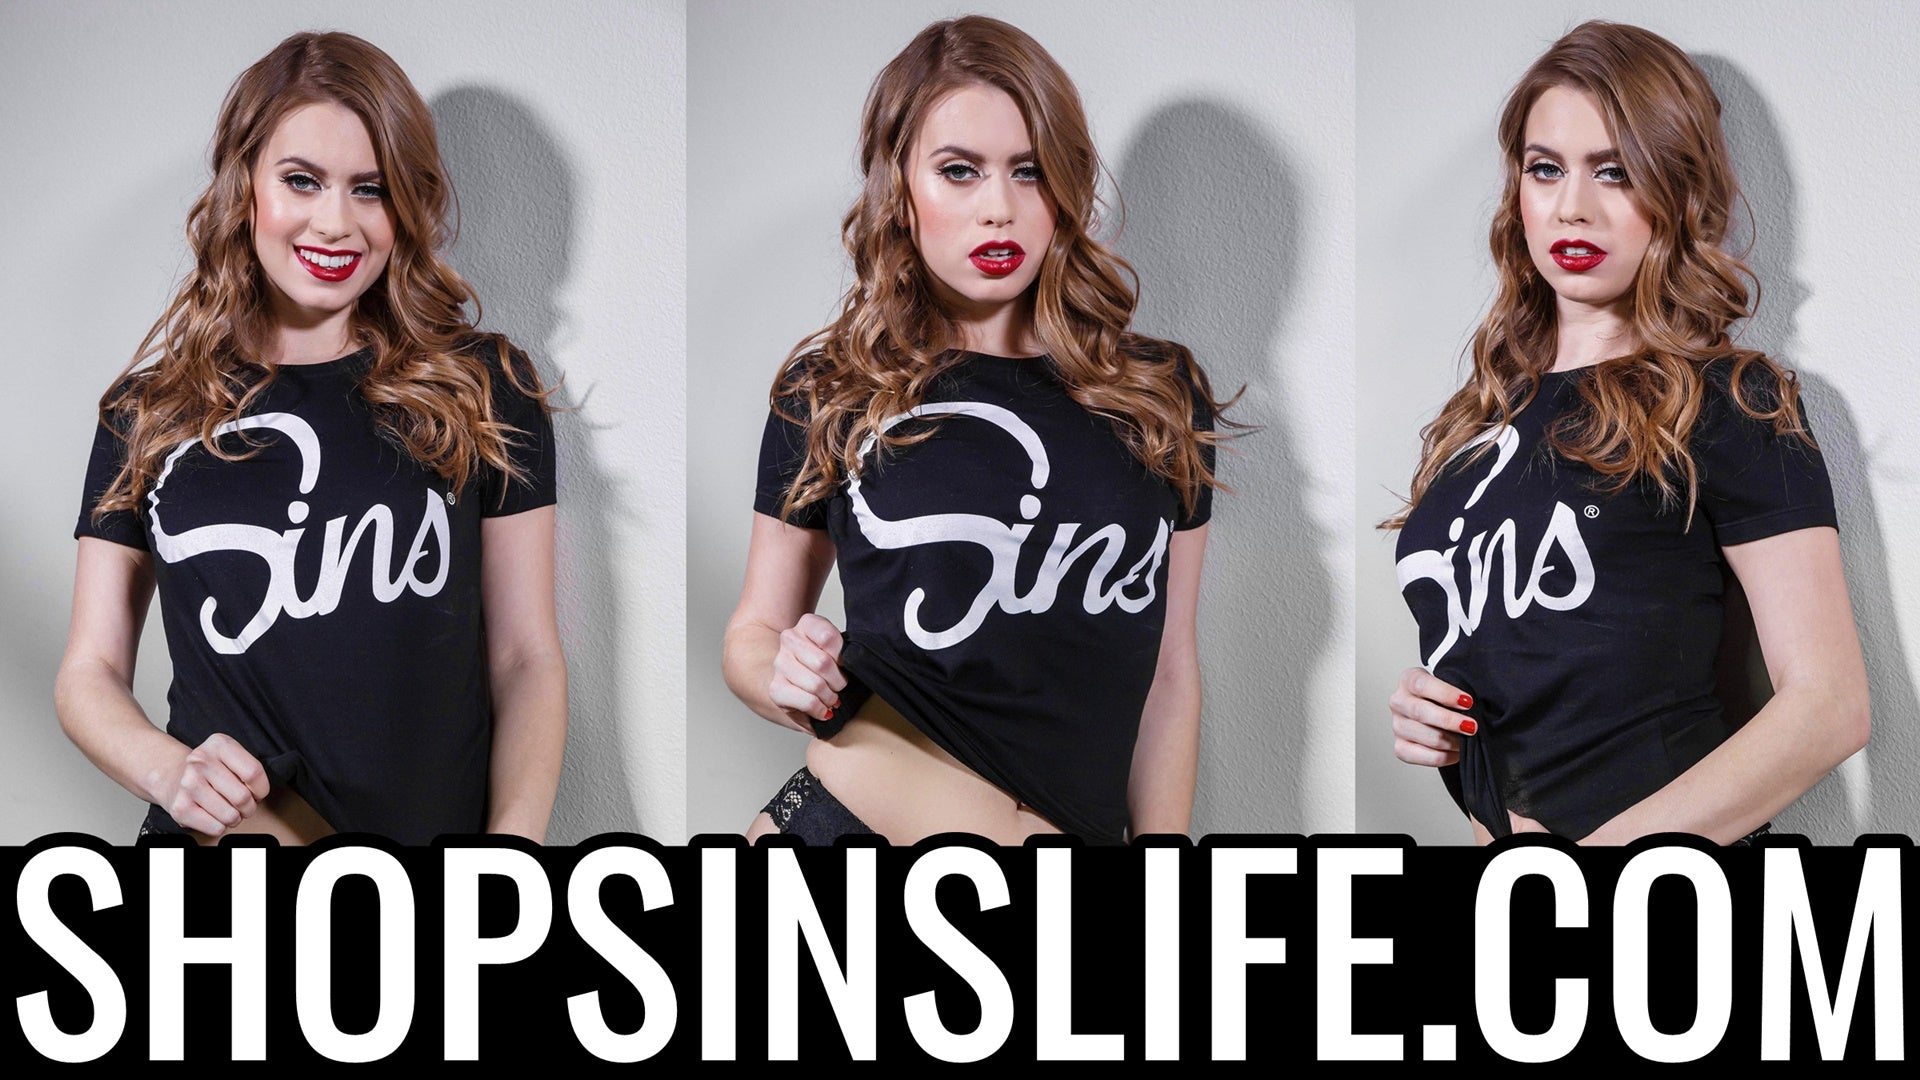 sins logo sins clothing sins merchandisejohnny sins and kissa sins